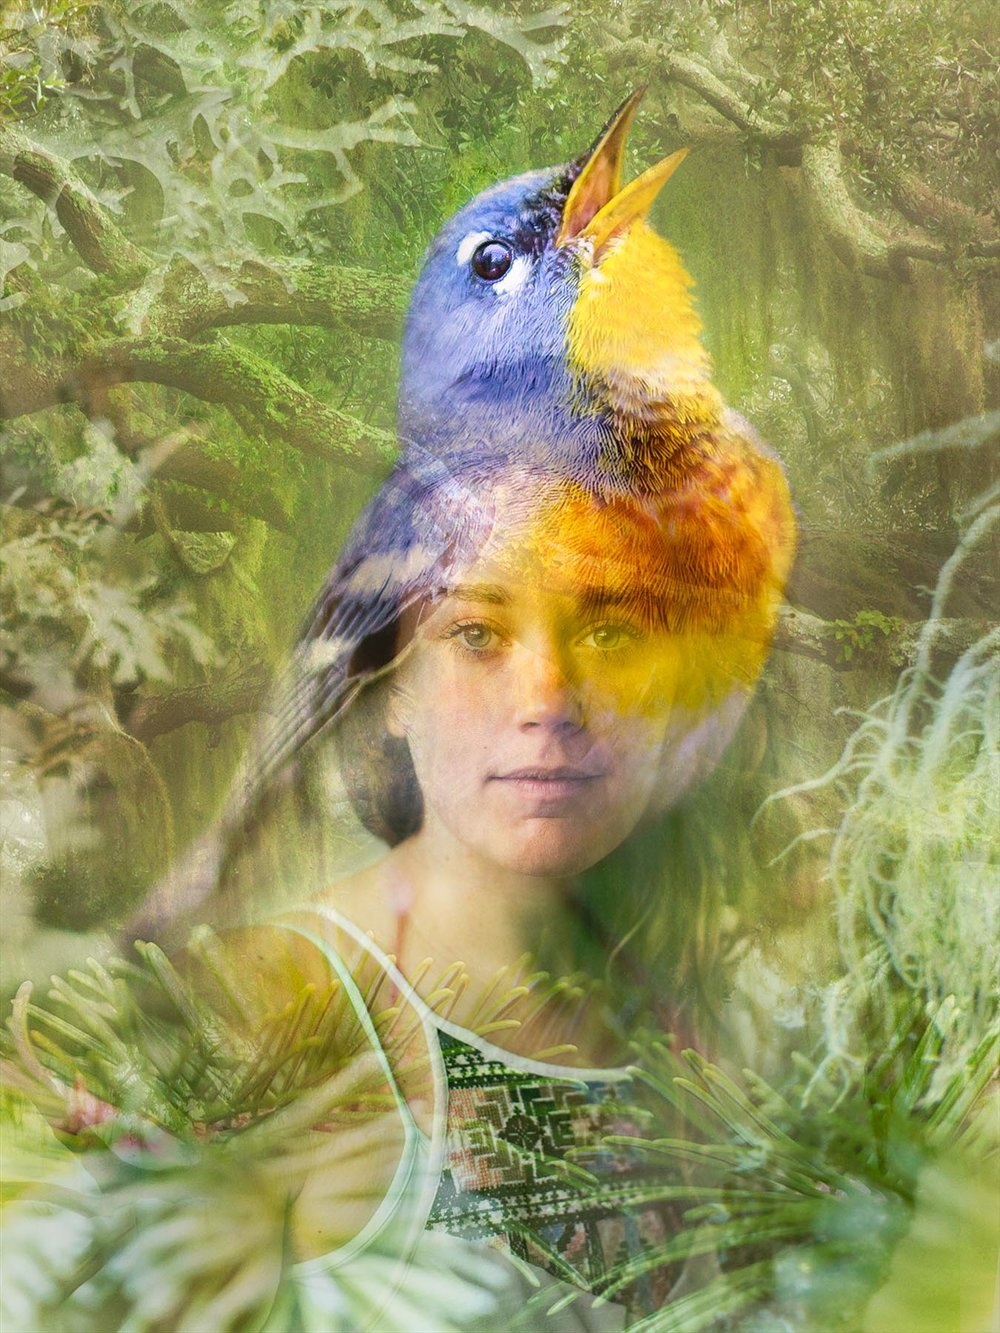 Alexandra Munters and a Northern Parula - In both southern and northern habitat